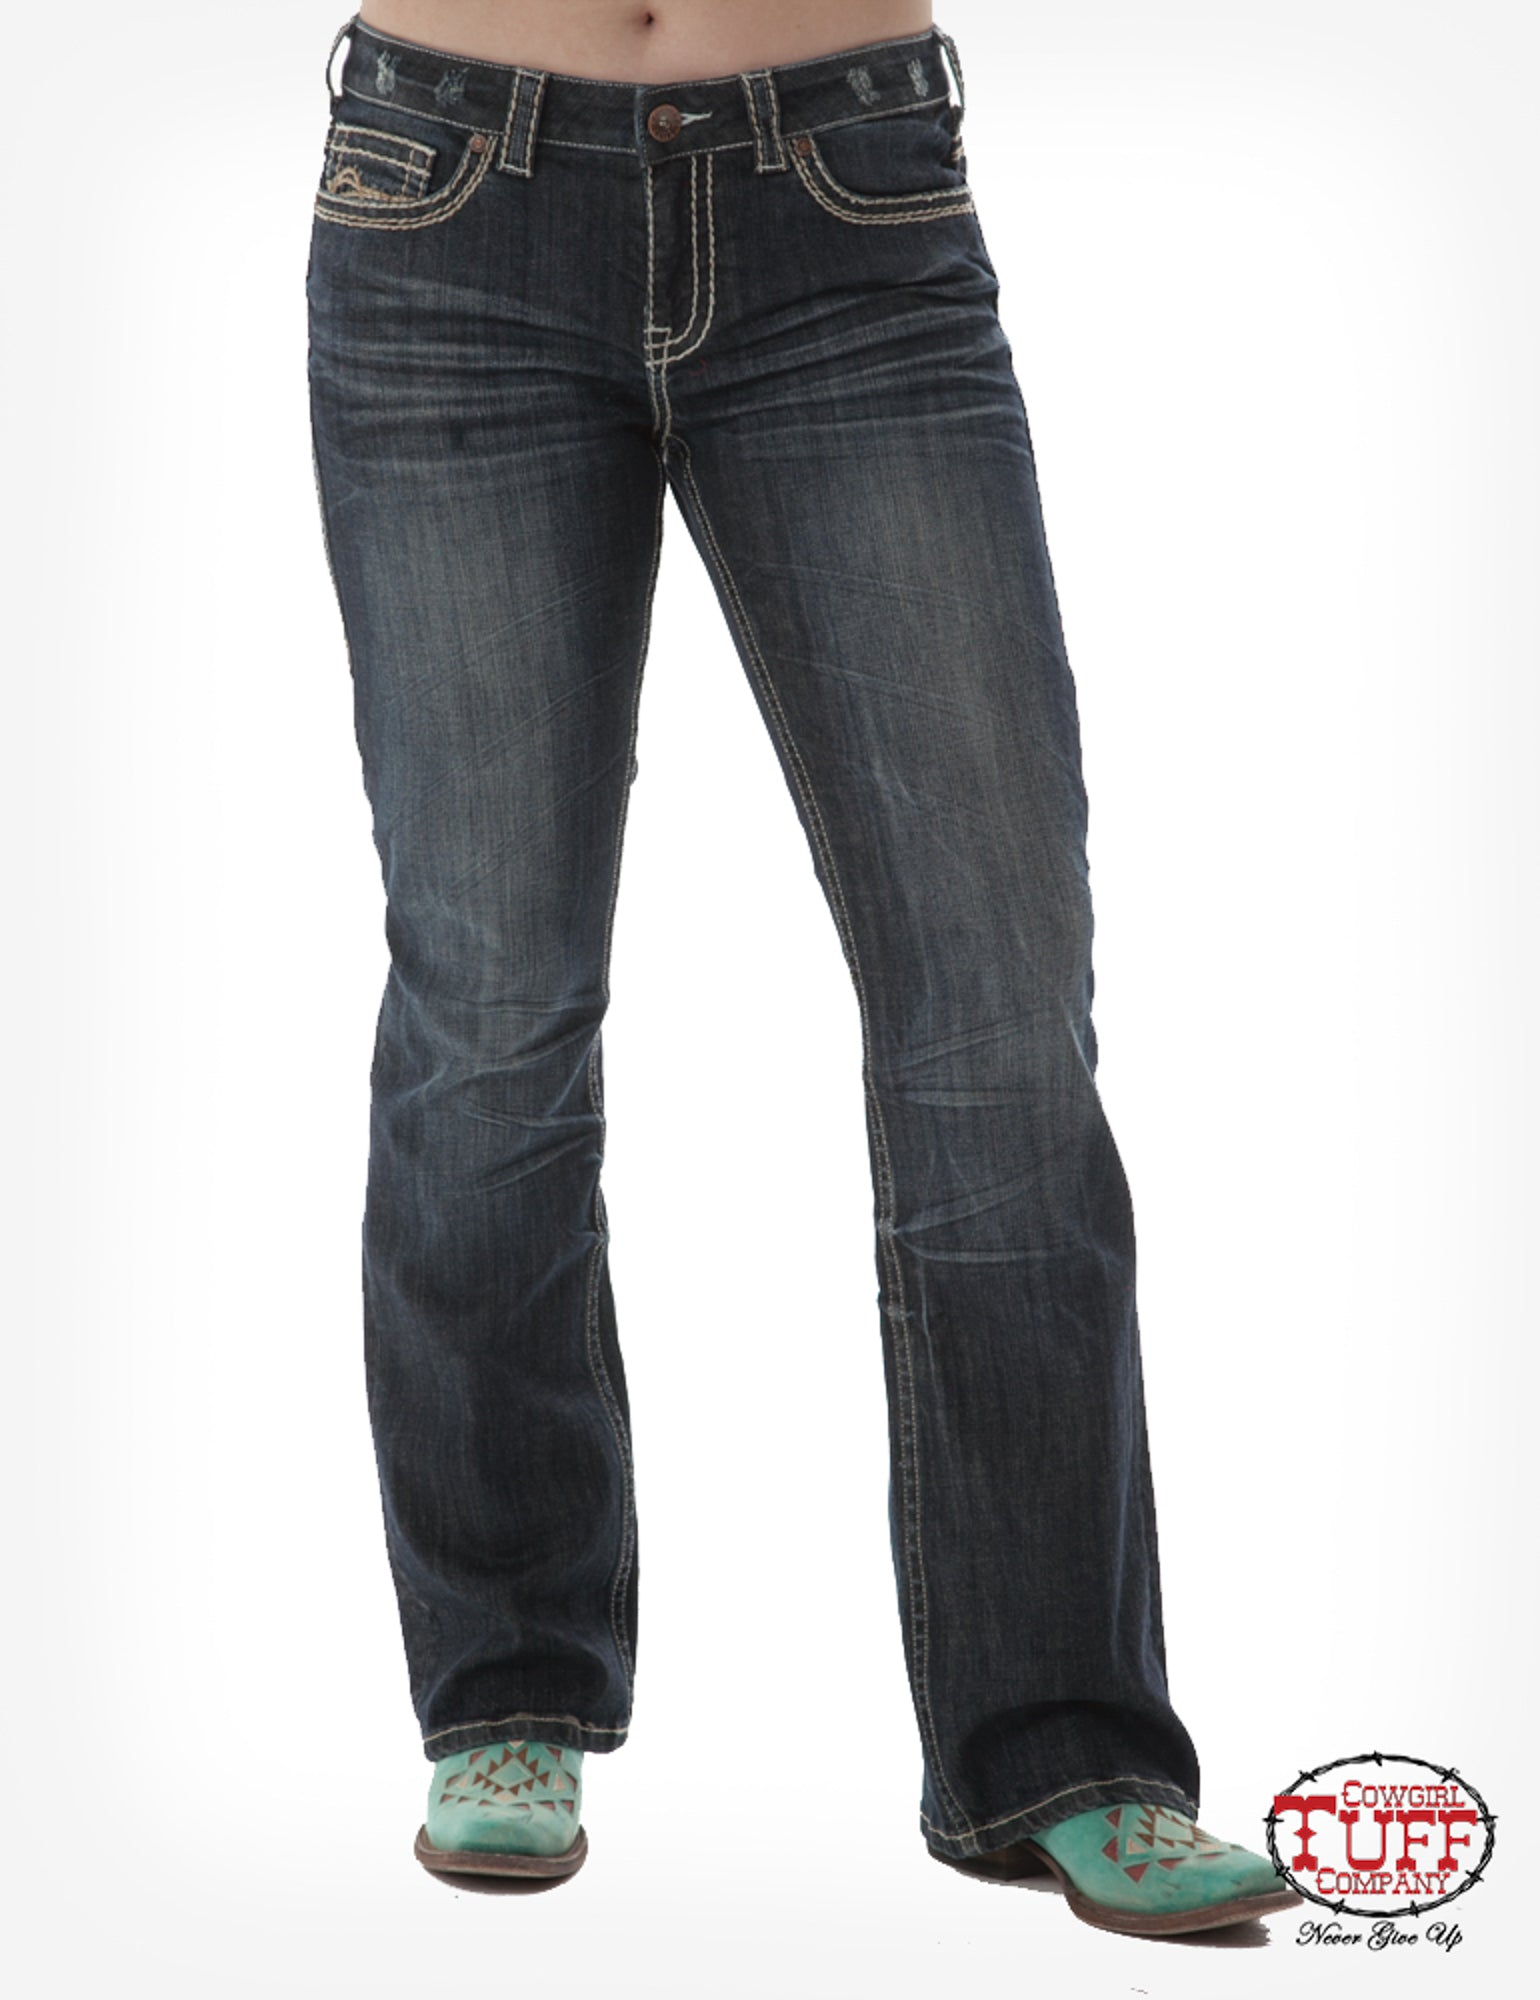 925114af422 Cowgirl Tuff Womens Dark Wash Cotton Blend Jeans No Limits – The ...